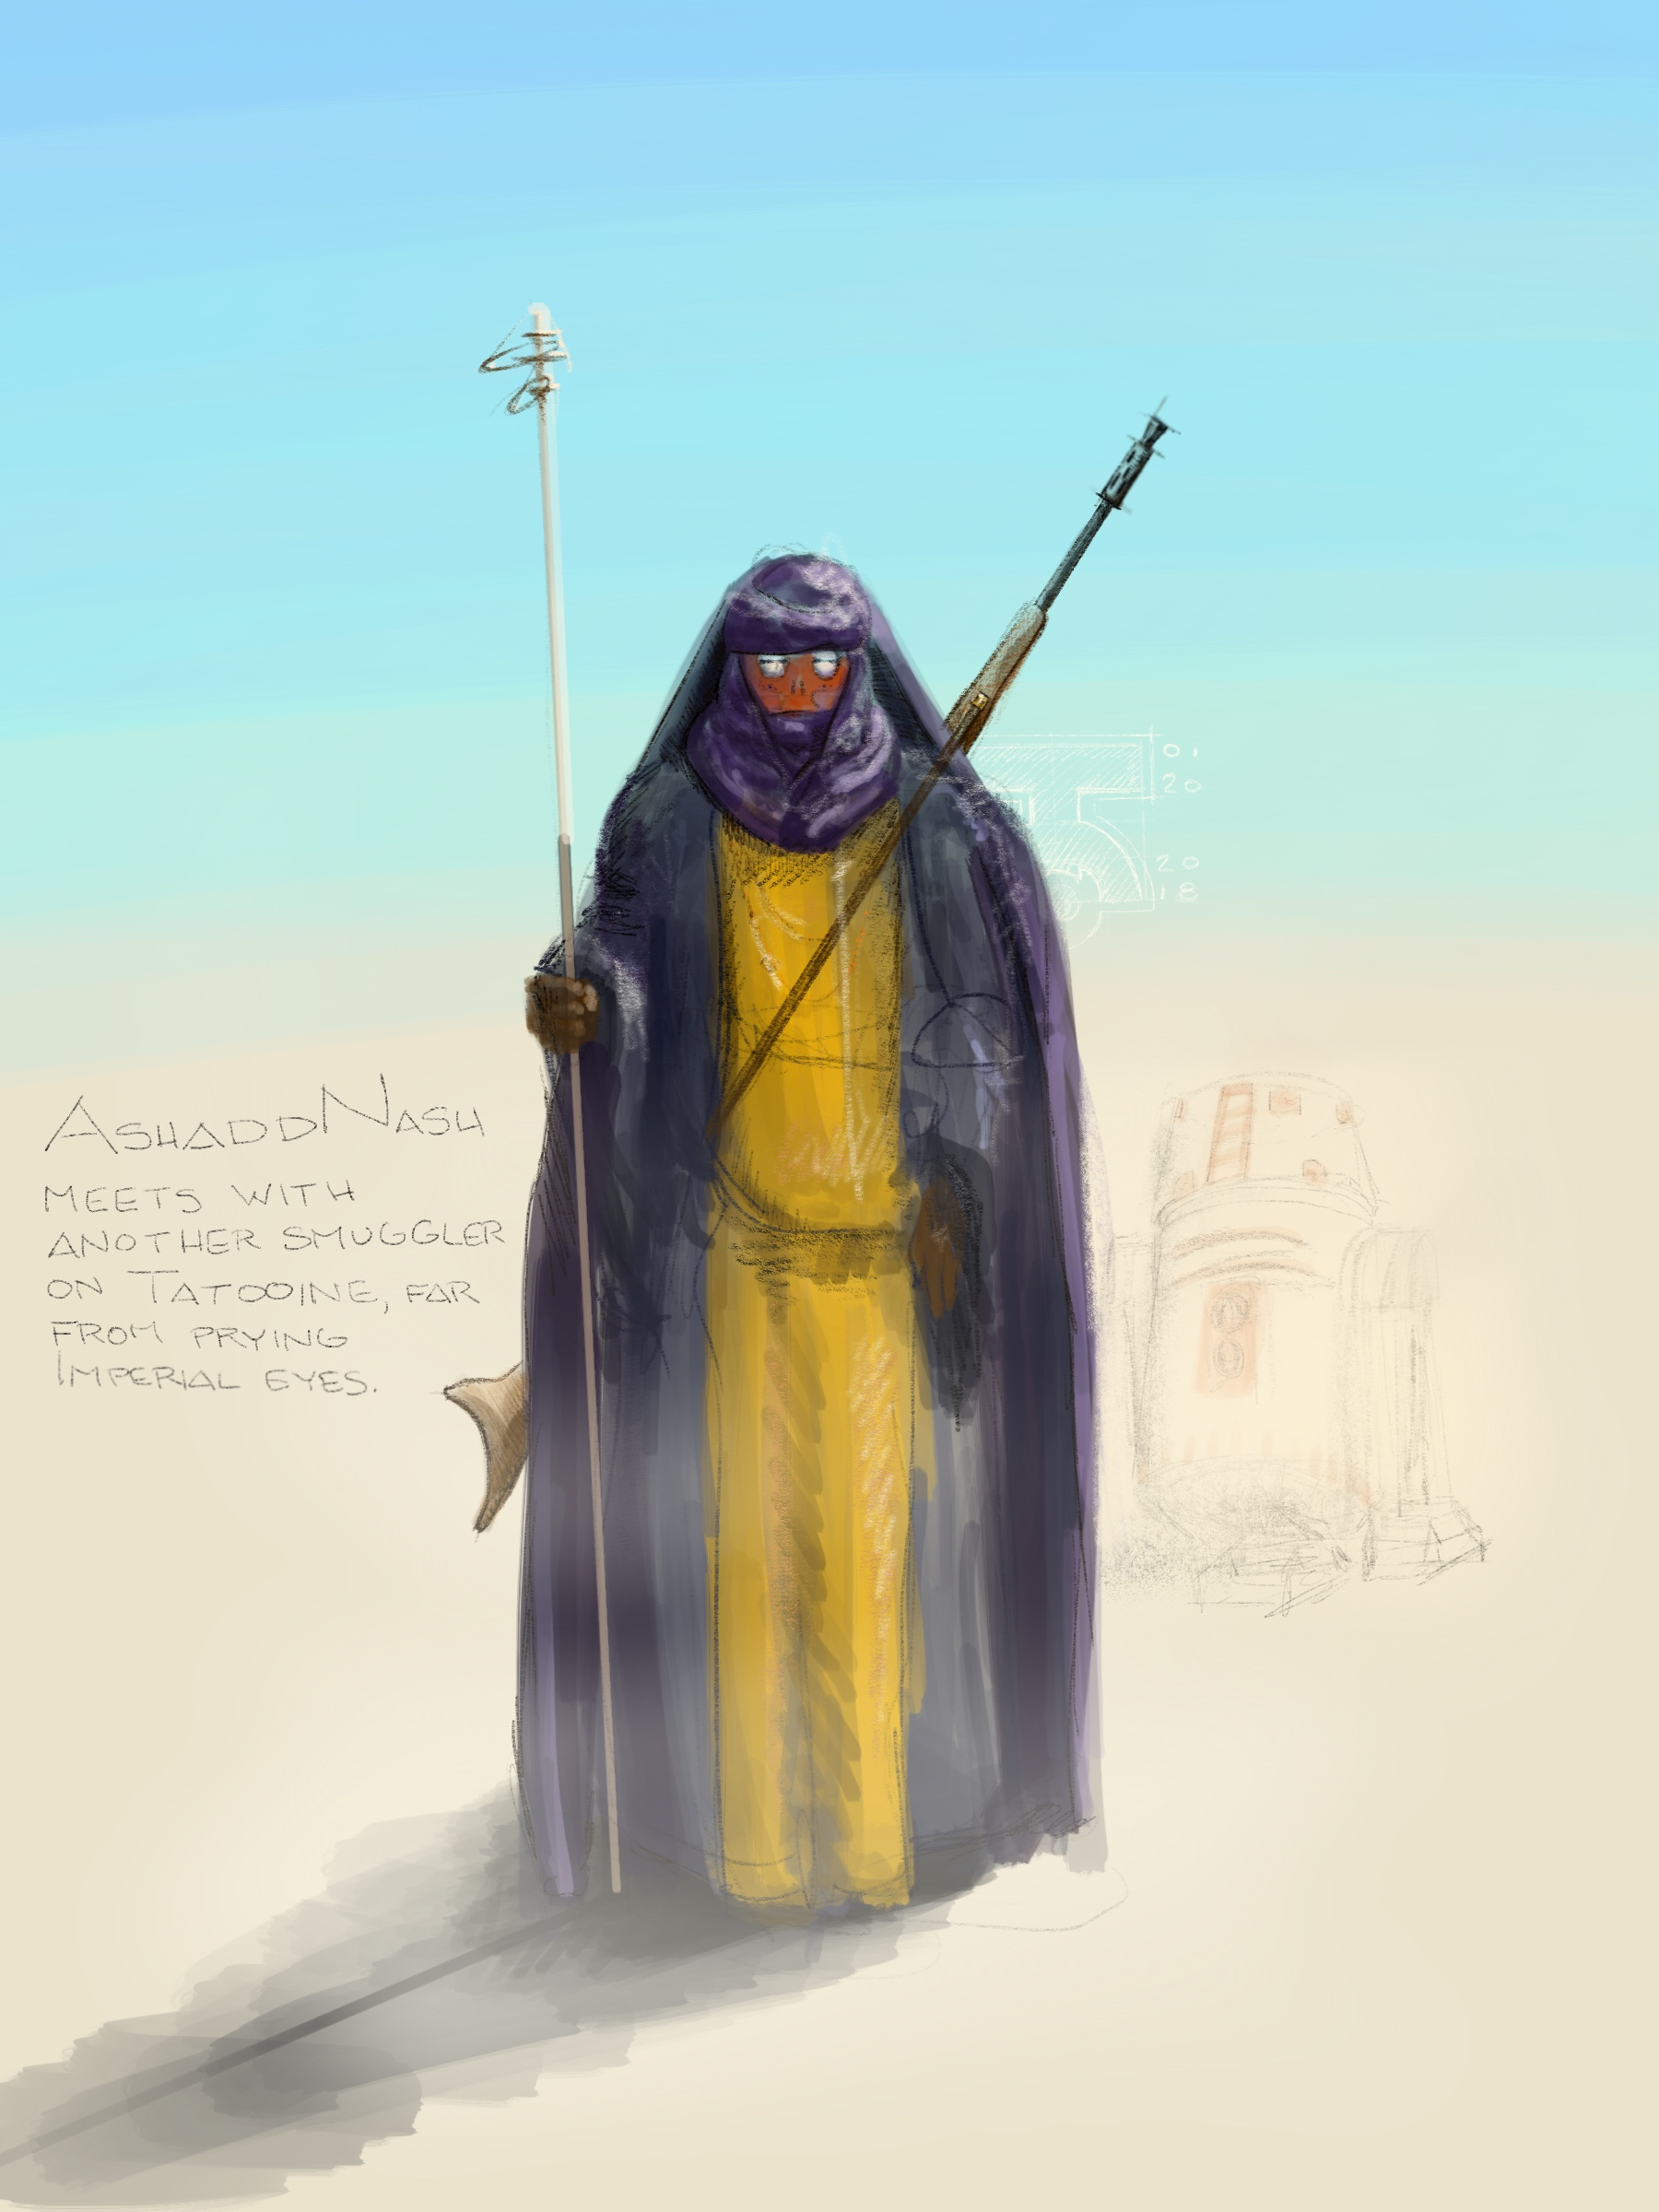 Ashadd approaches across the desert to meet with a fellow smuggler